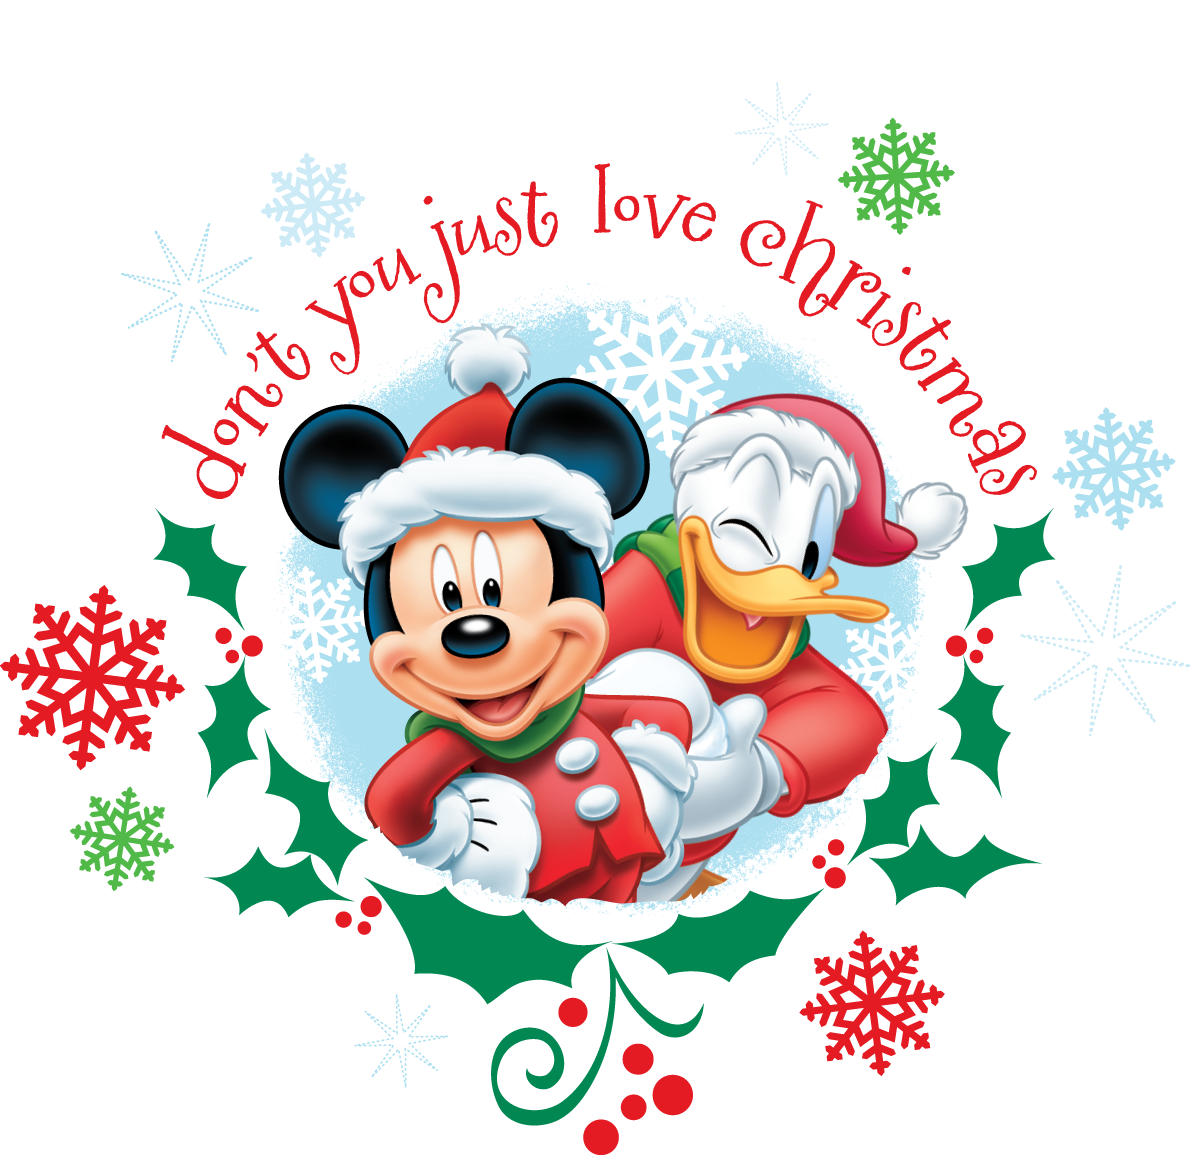 Disney Quotes For Christmas Cards: Countdown To Christmas! ~Mickey #Donald